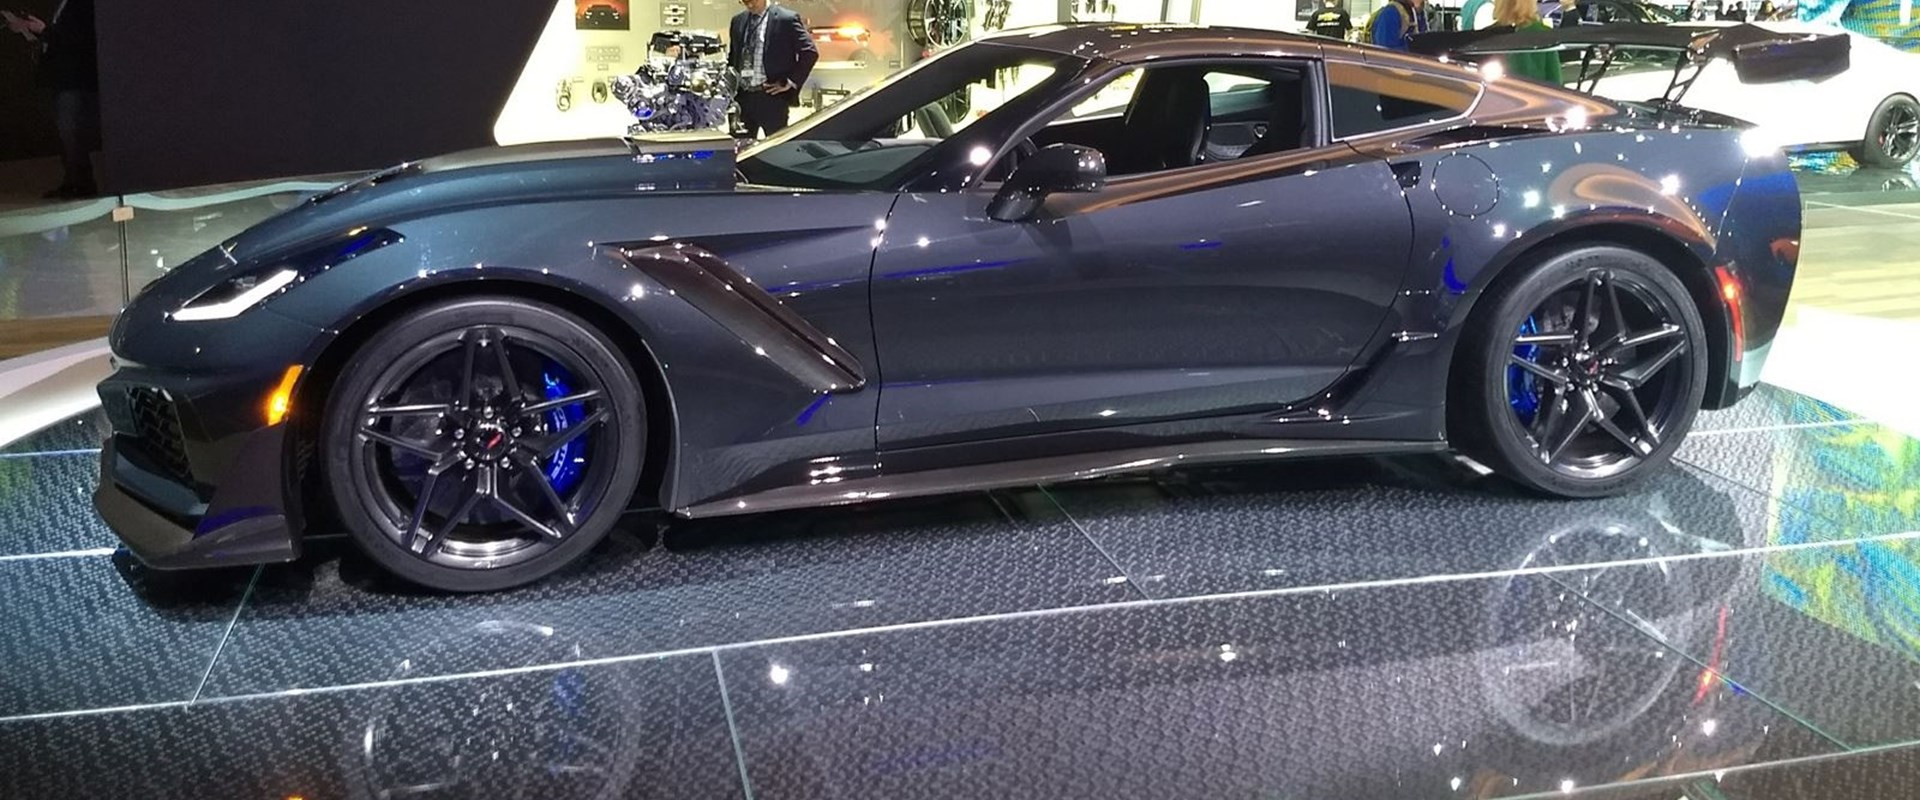 Chevrolet Corvette ZR-1 May Not Be The Ultimate C7 - CarBuzz